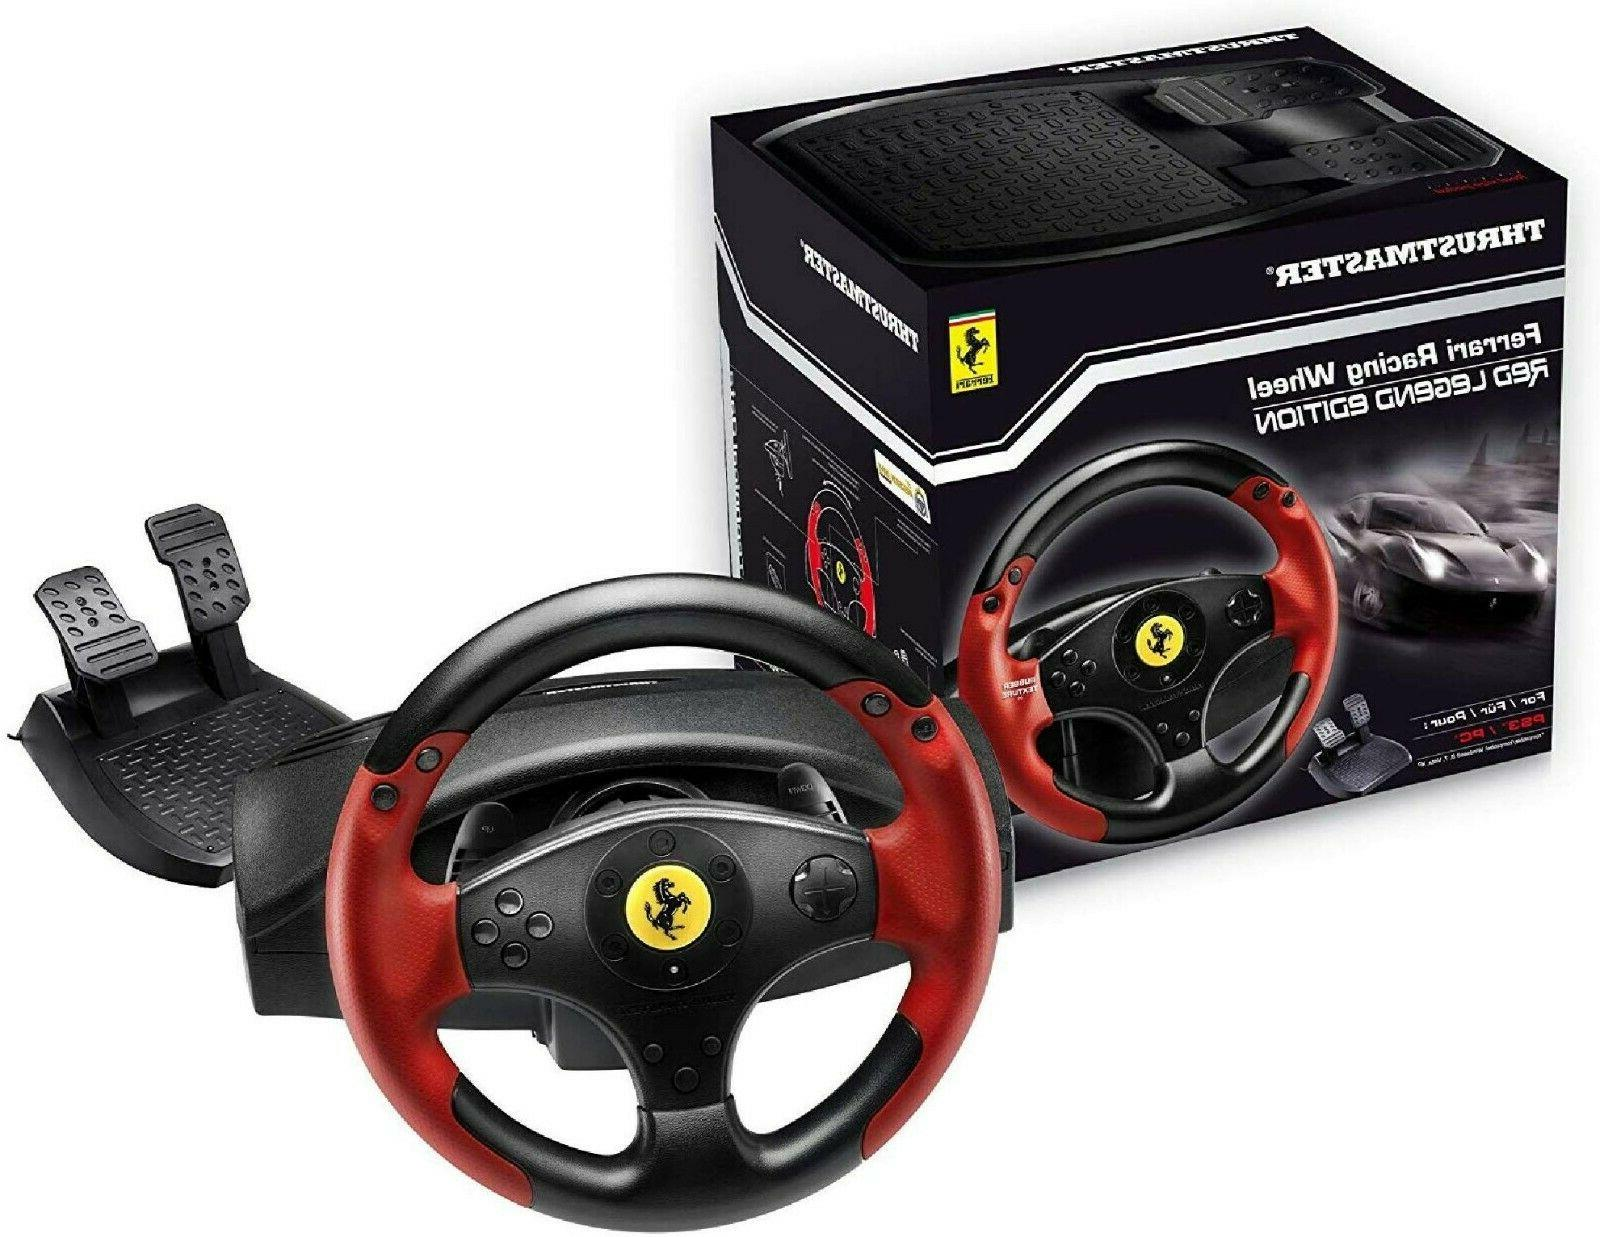 PS3 Racing Steering Wheel & Pedals Gaming Driving Simulator